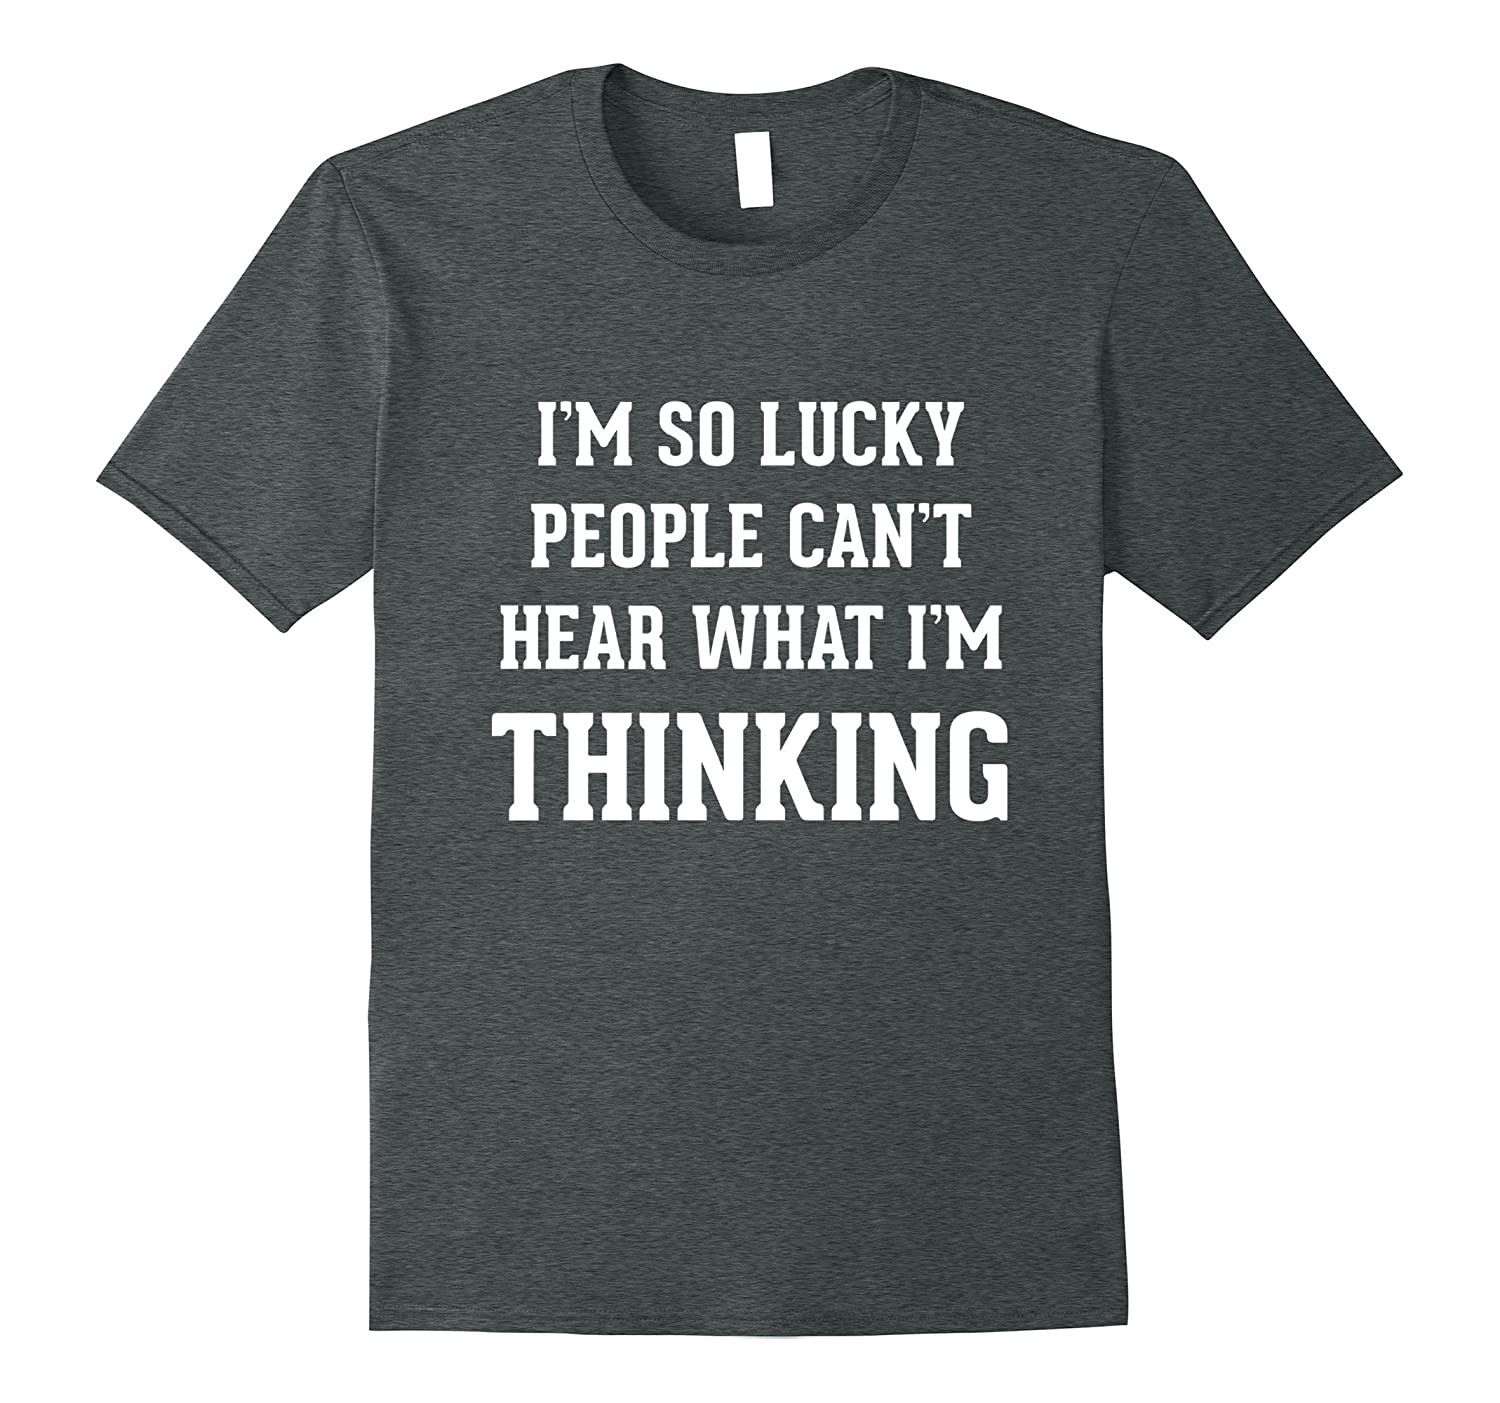 I'm So Lucky People Can't Hear What I'm Thinking Funny Shirt